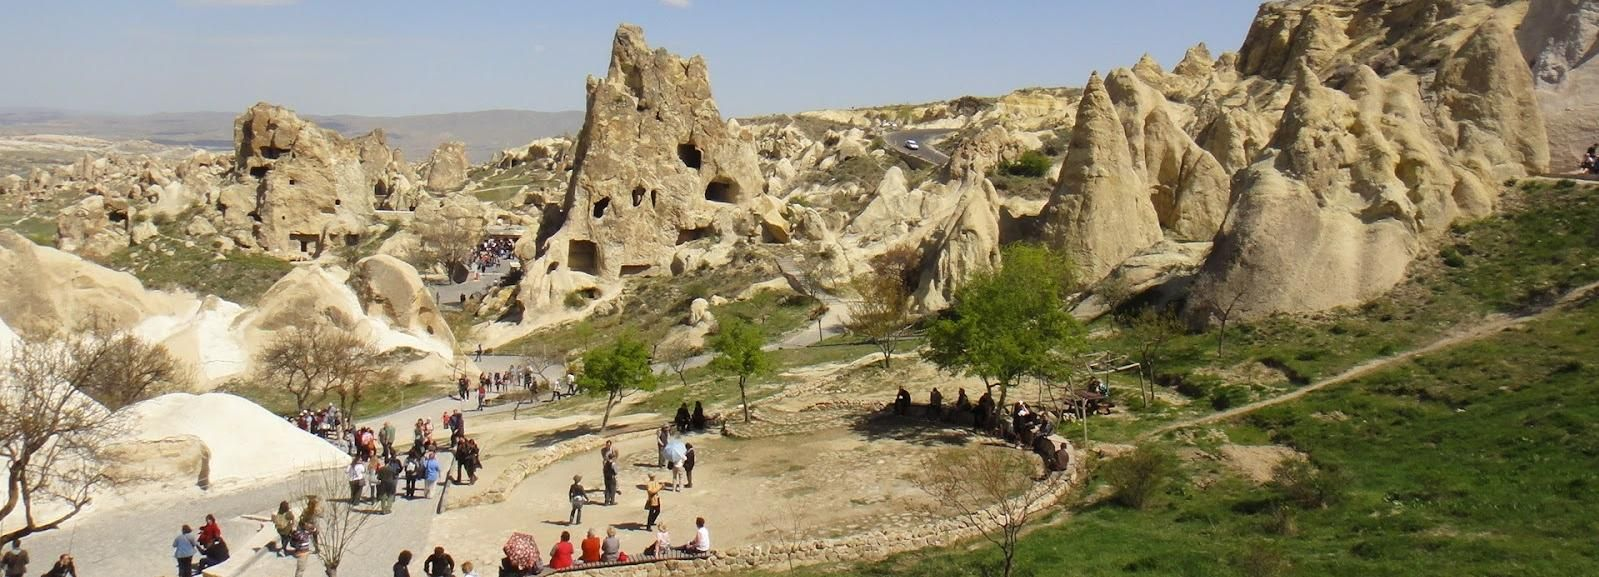 Sightseeing Tour of Cappadocia